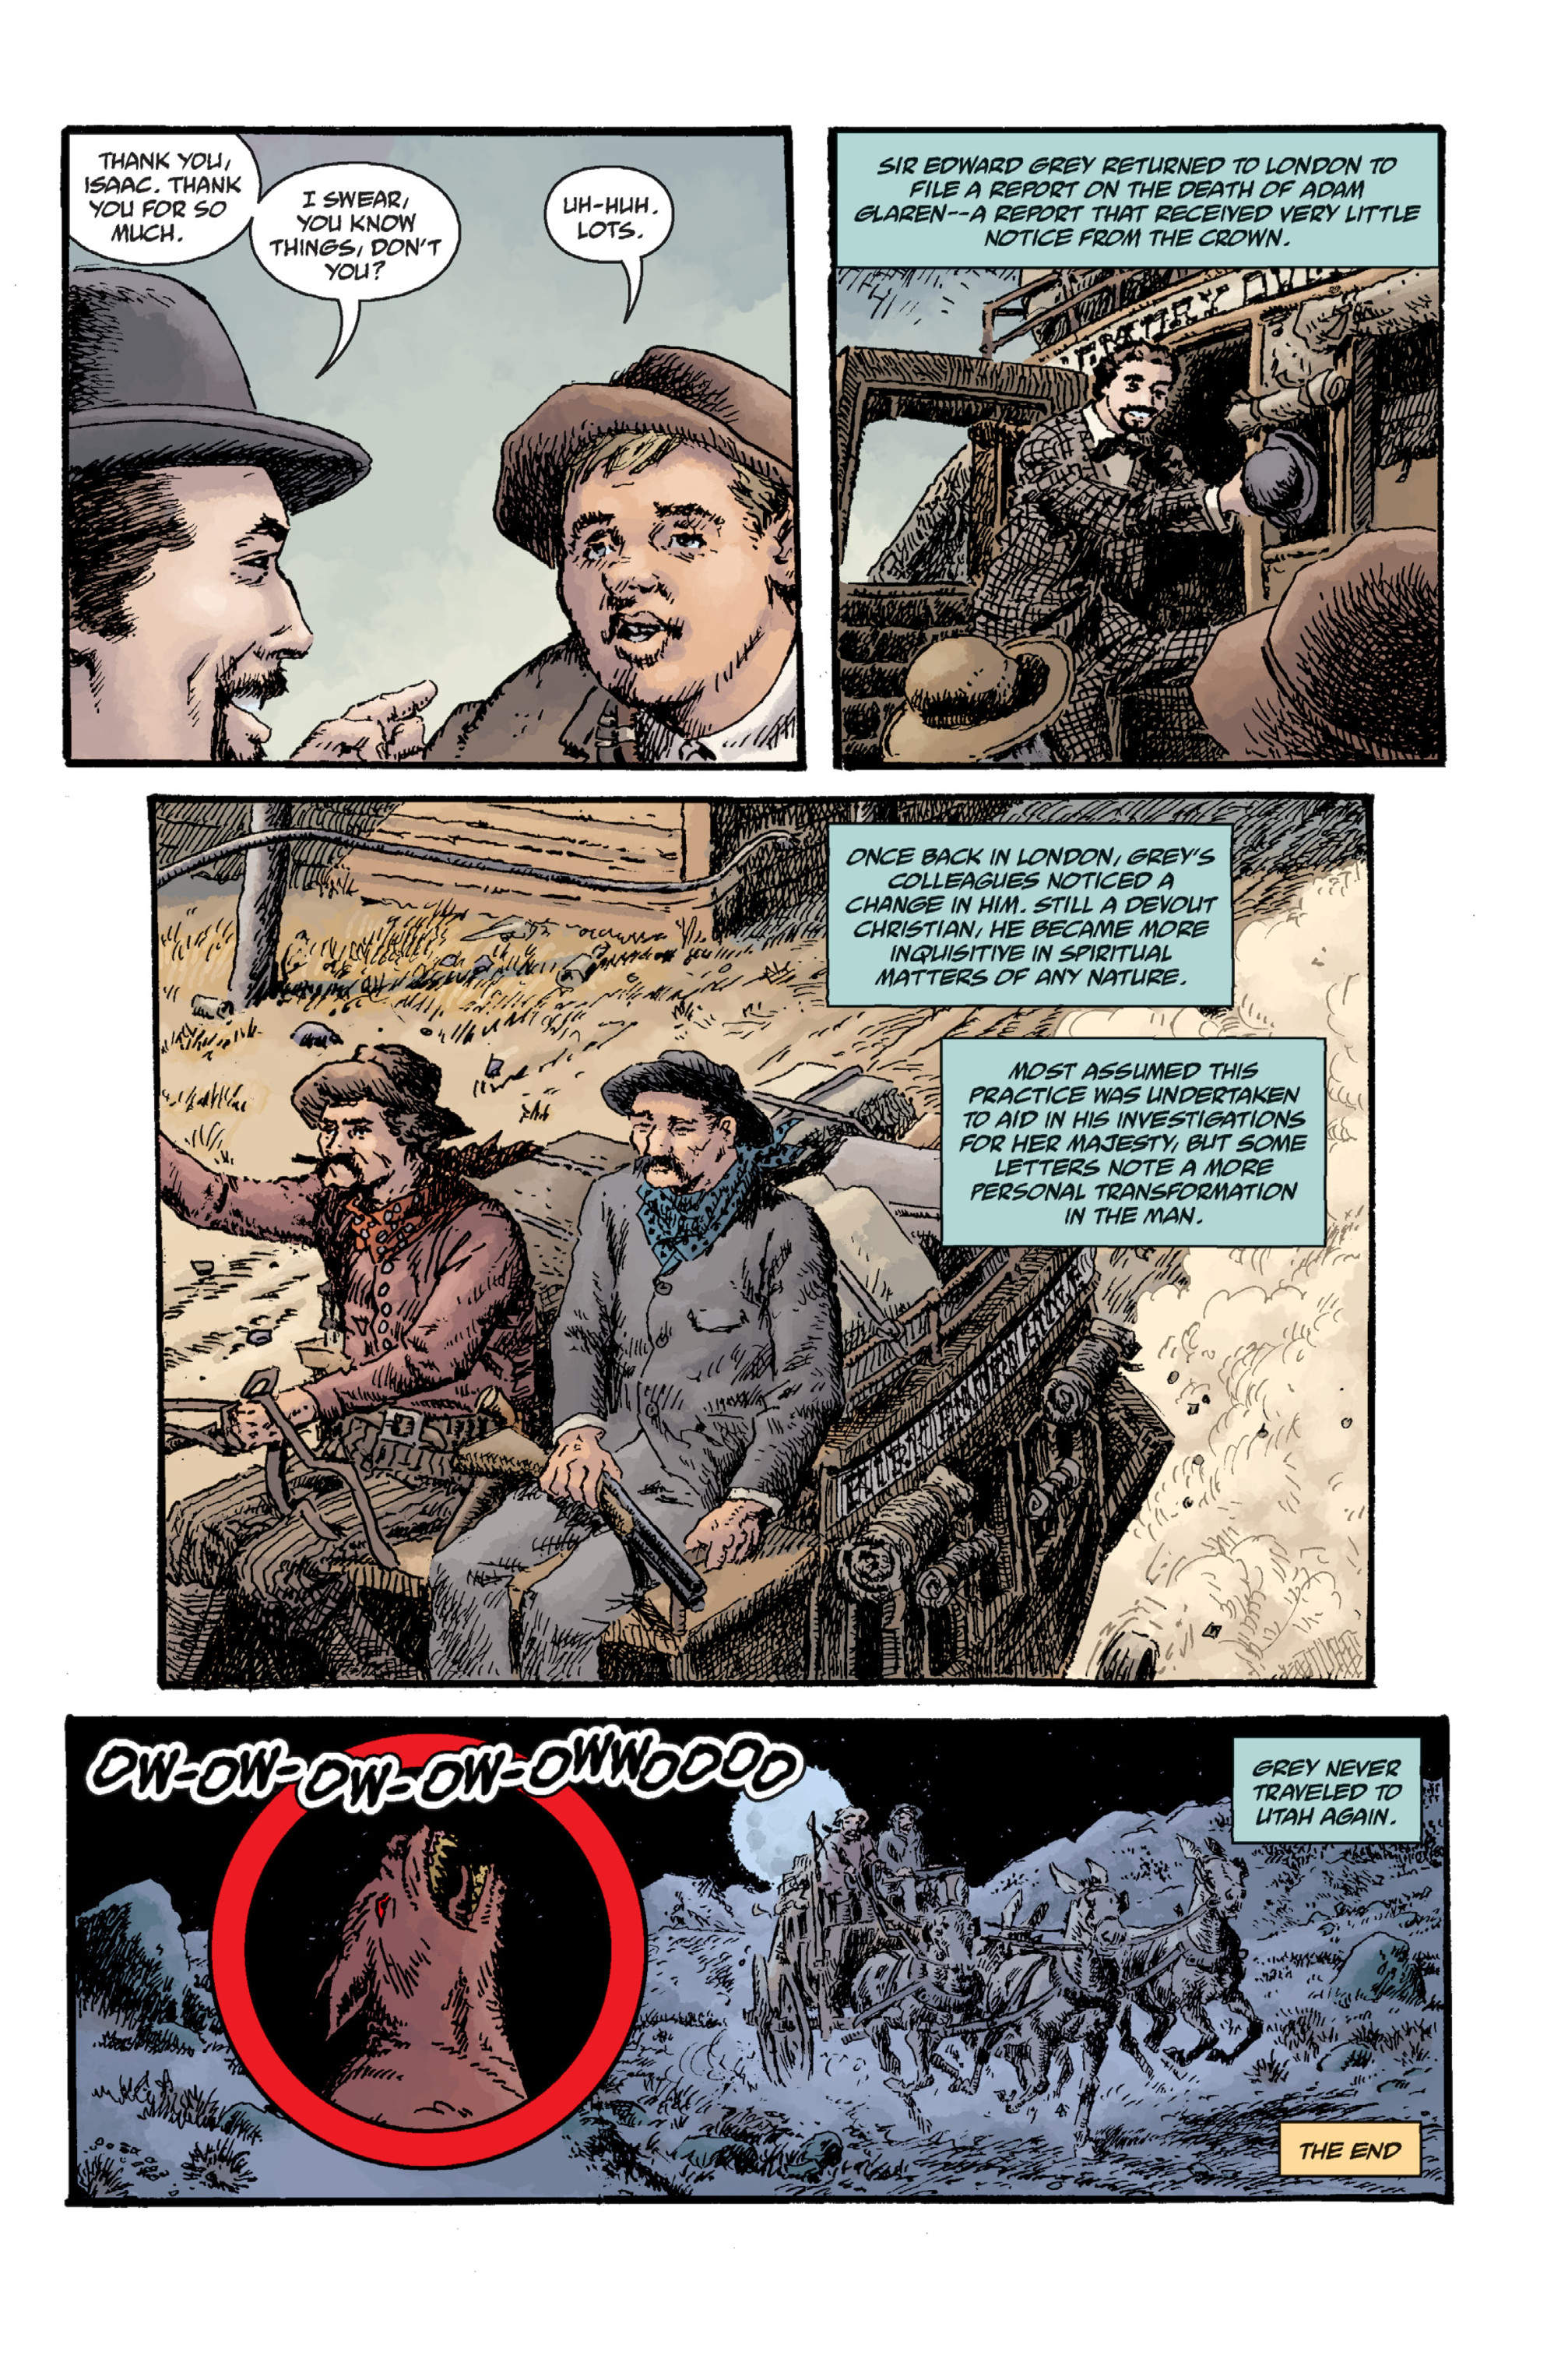 Read online Sir Edward Grey, Witchfinder: Lost and Gone Forever comic -  Issue # TPB - 122